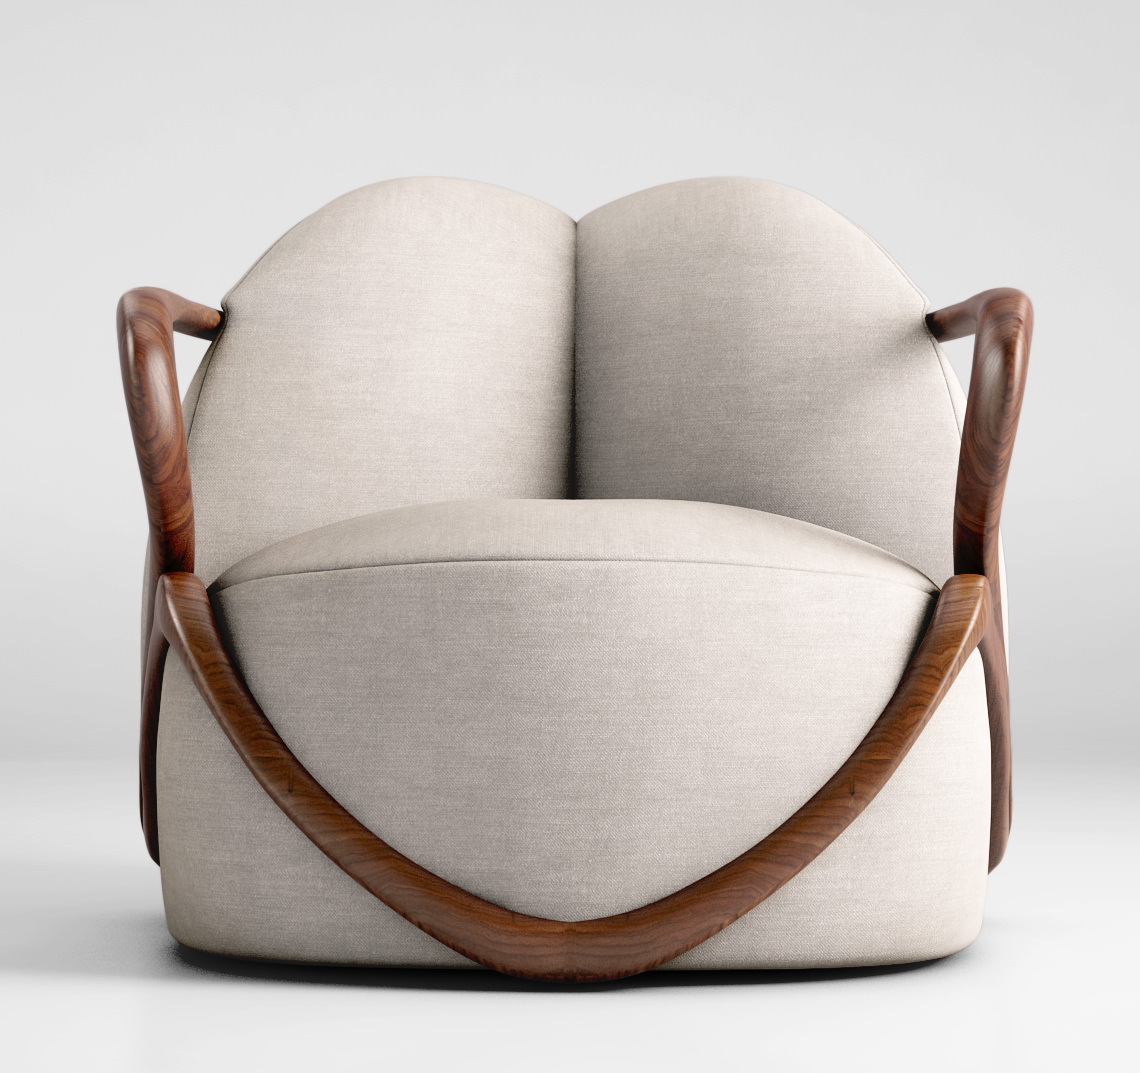 Giorgetti hug armchair 3d model max obj for Model furniture